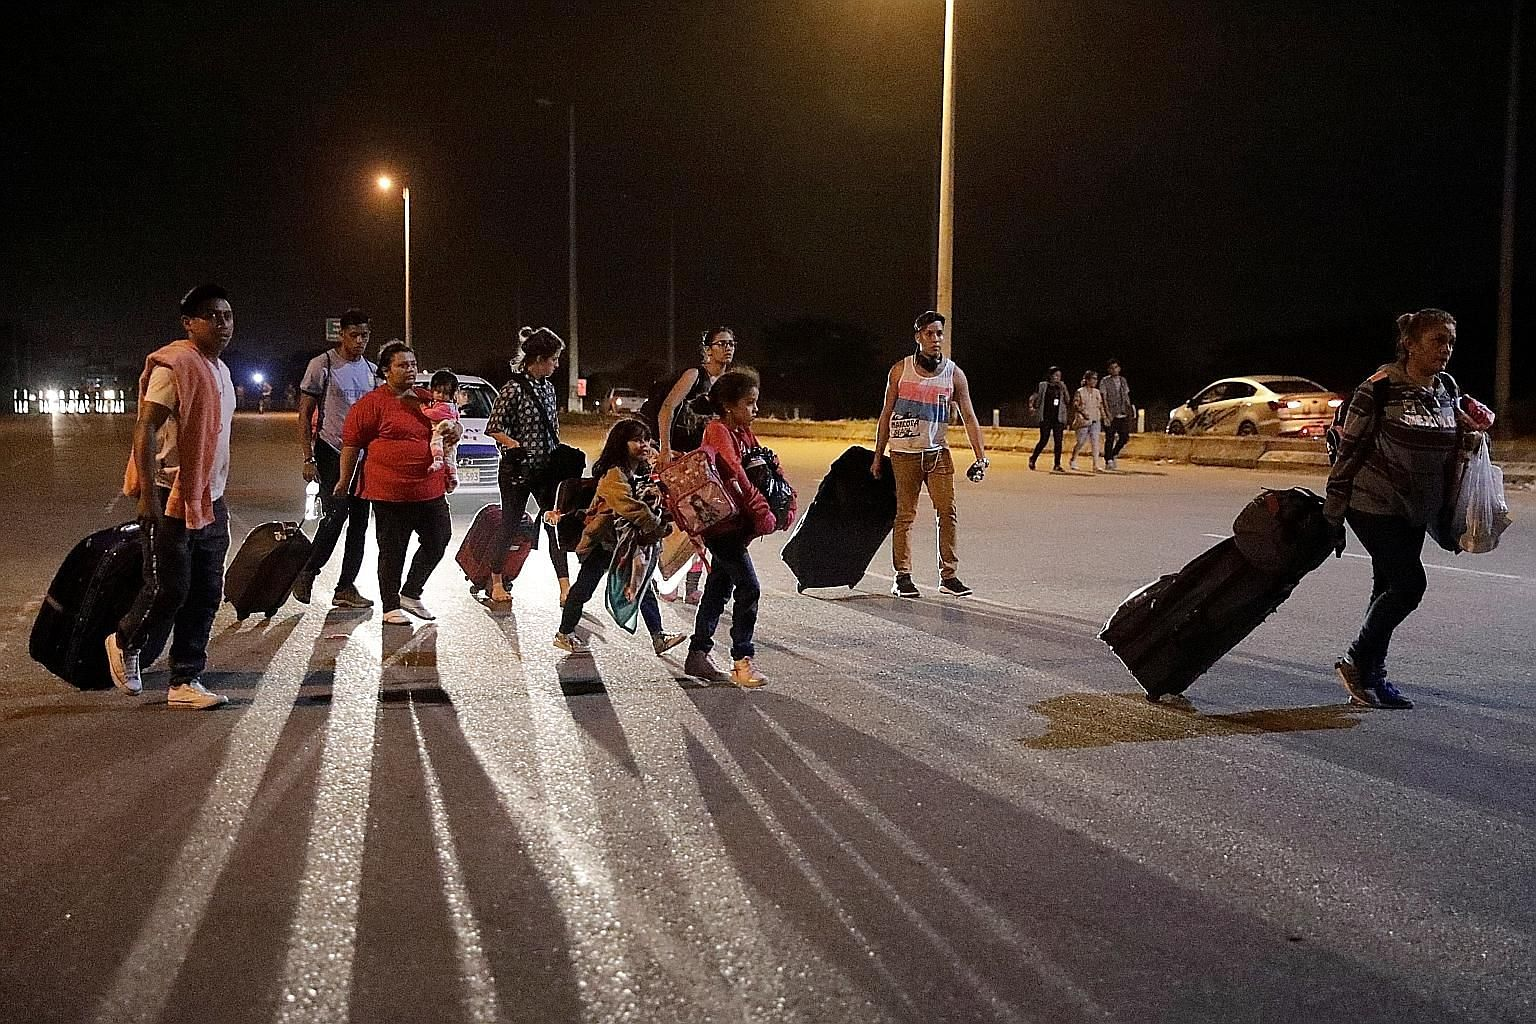 Venezuelan migrants arriving at the Peruvian border town of Tumbes on Friday, ahead of a new law that requires all Venezuelan migrants to have valid visas and passports.